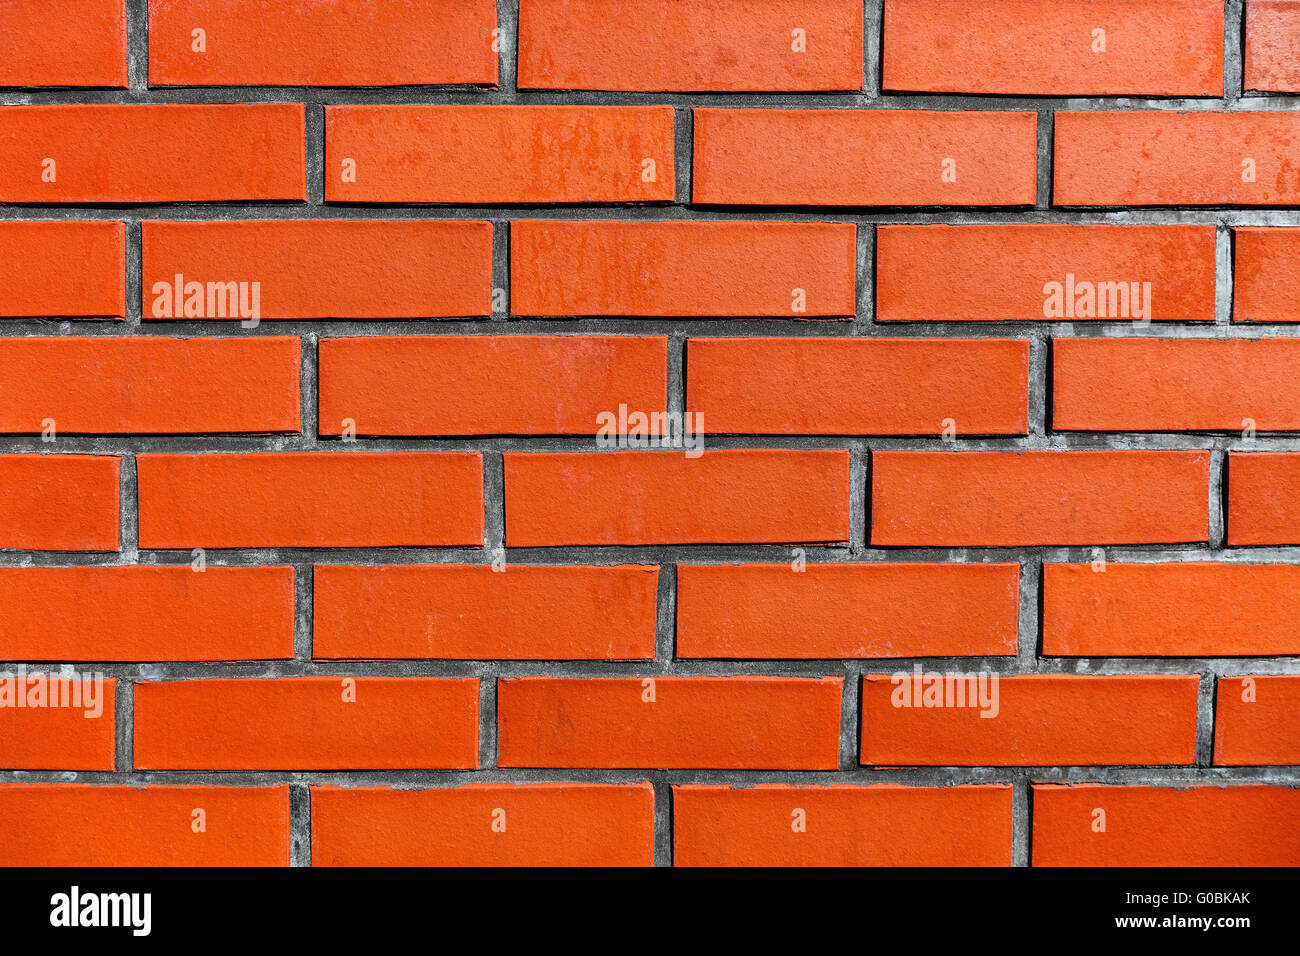 Brick wall background - Stock Image